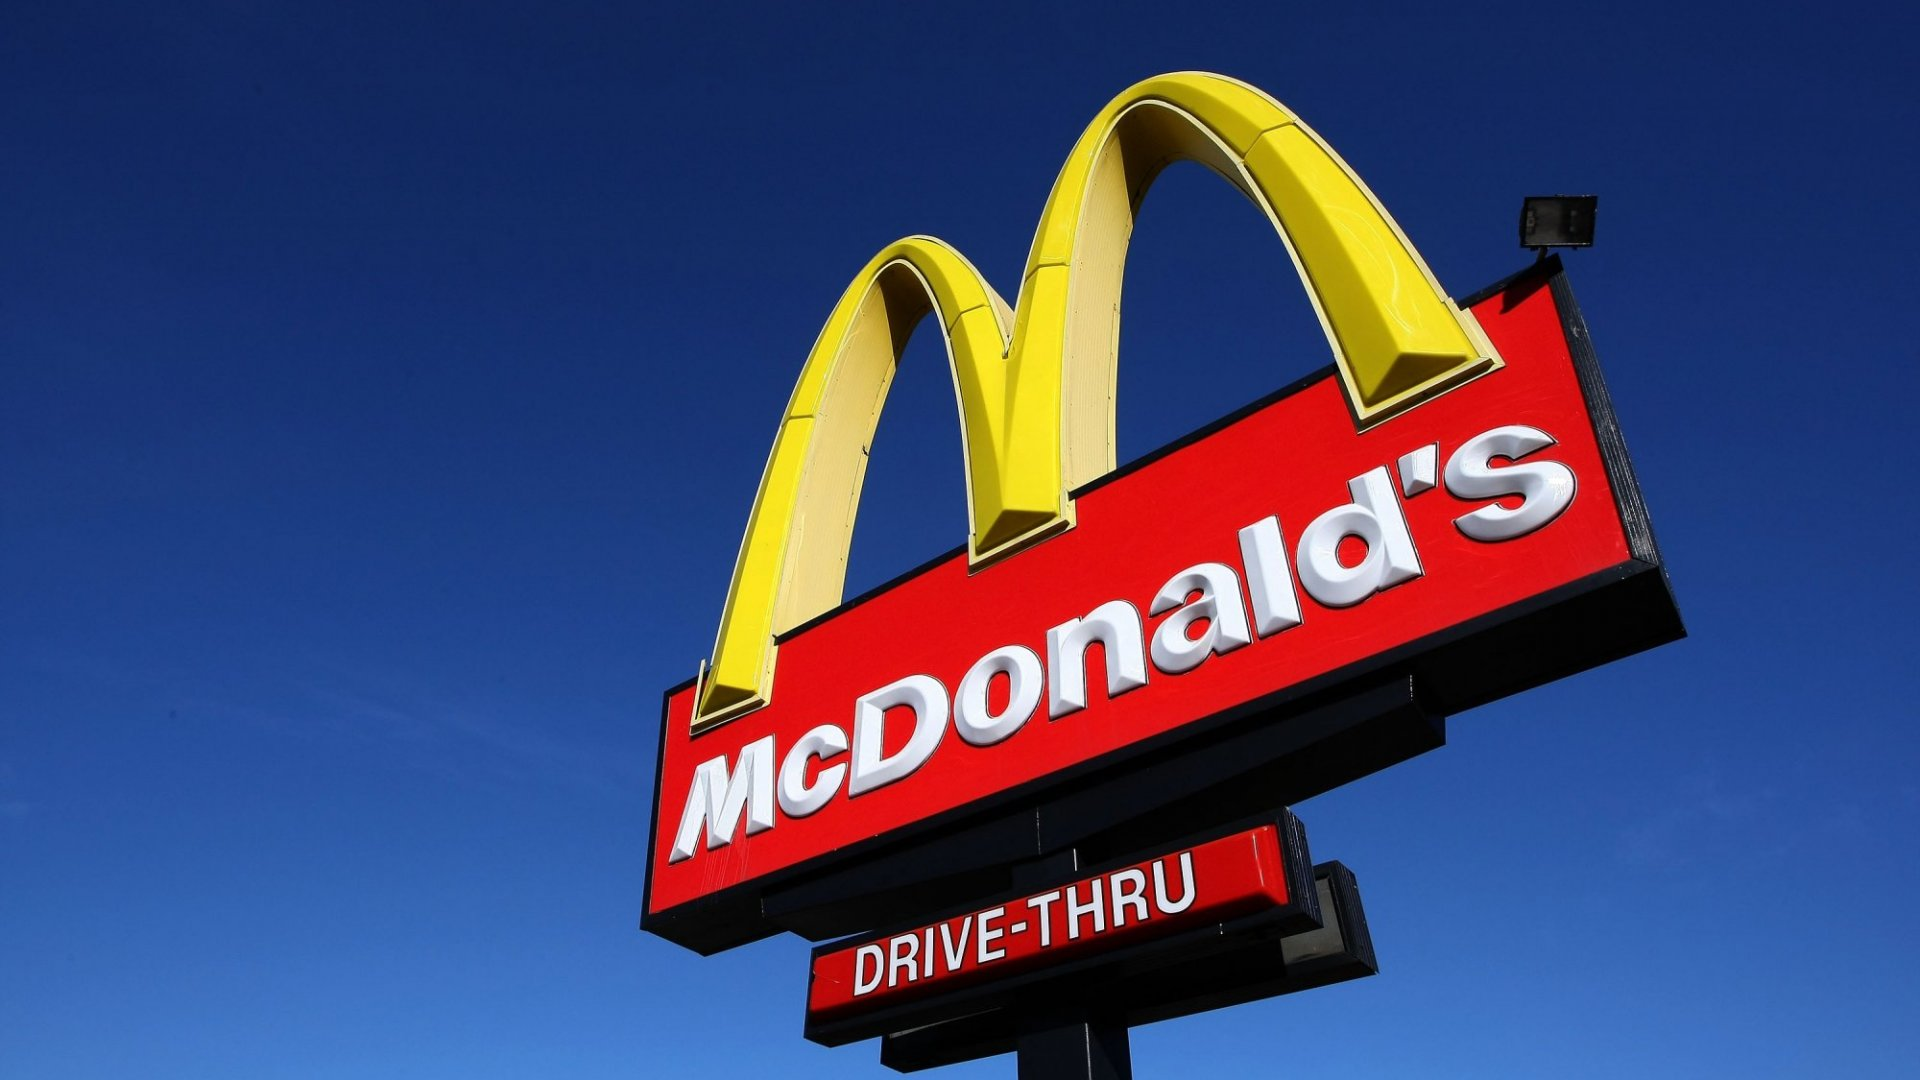 McDonald's Is Making a Surprising Change to Its Menu That Is Going to Make a Lot of Customers Very Unhappy